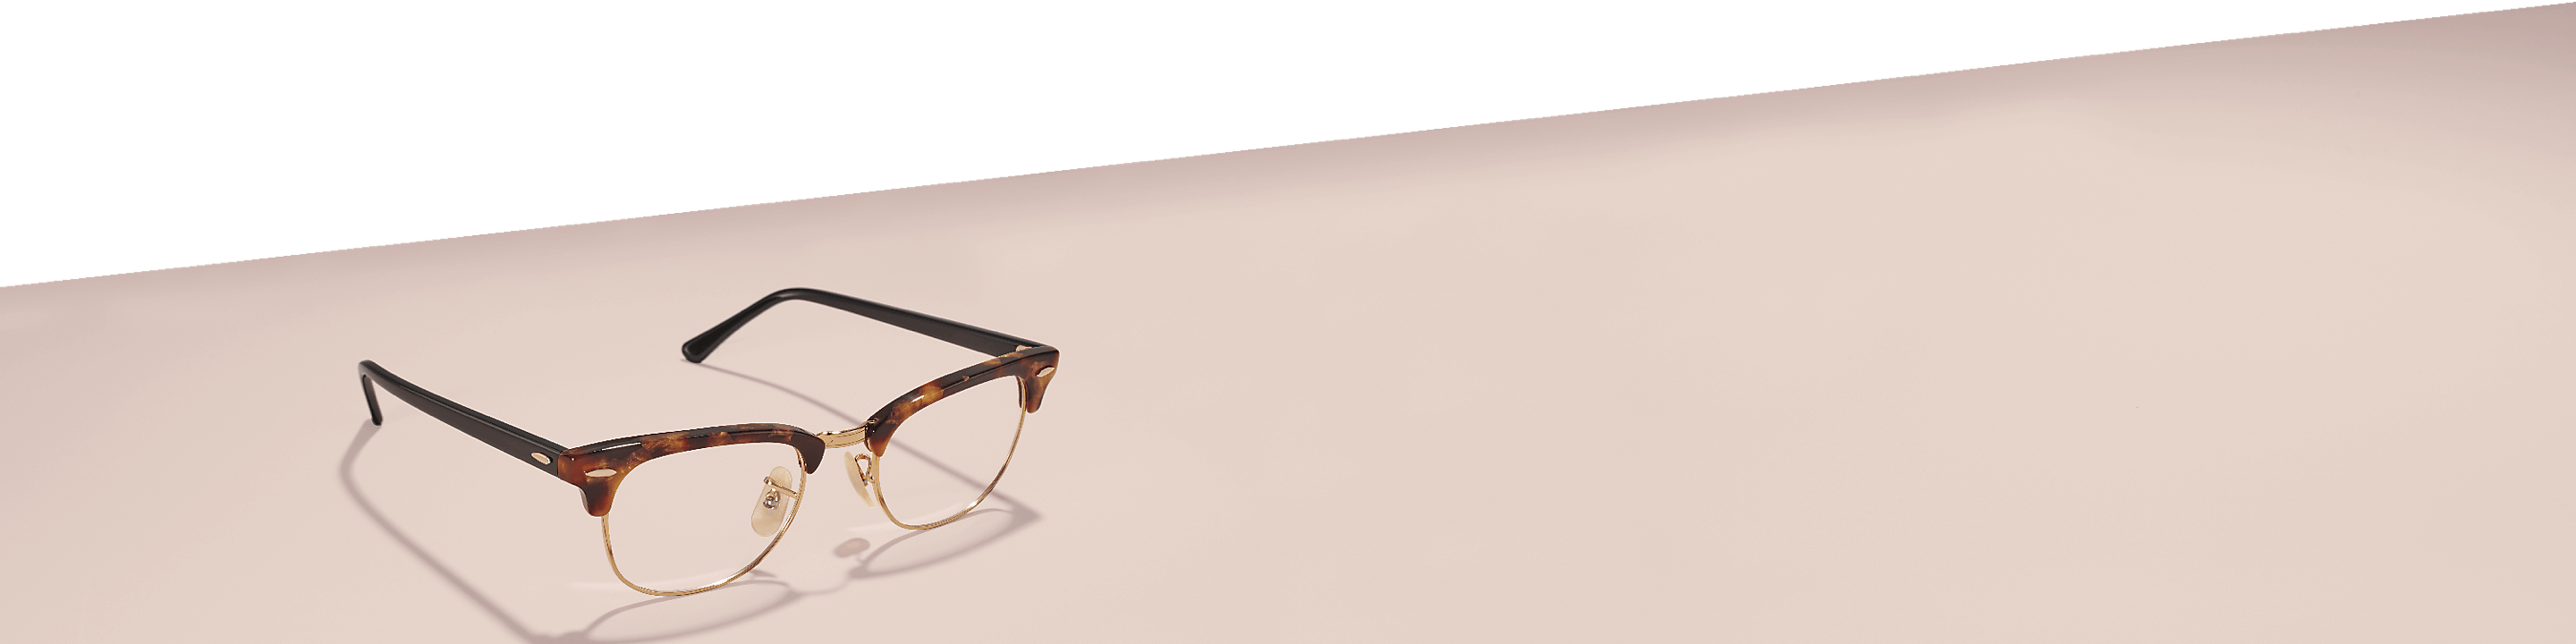 a1a8ac15127 Eyewear Trends – 2019 Spring Trends